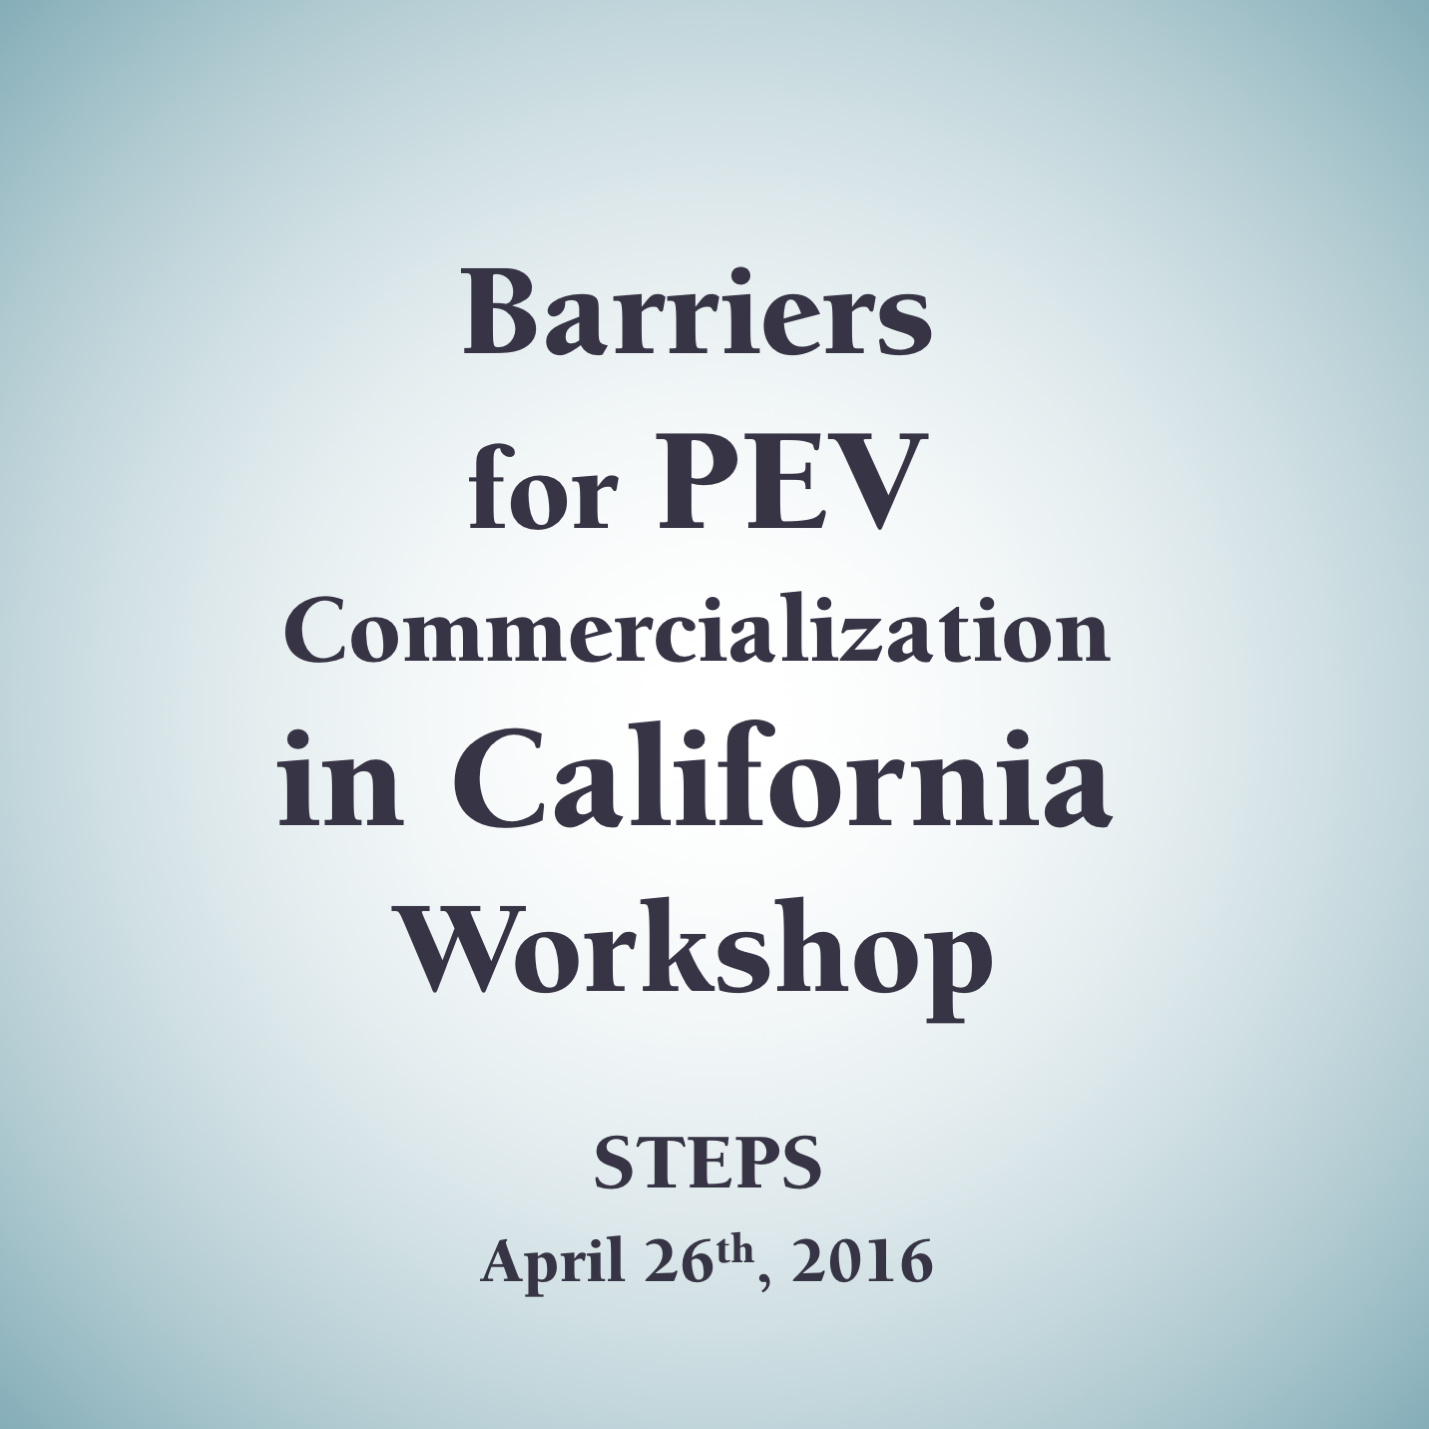 Barriers for PEV Commercialization in California Workshop